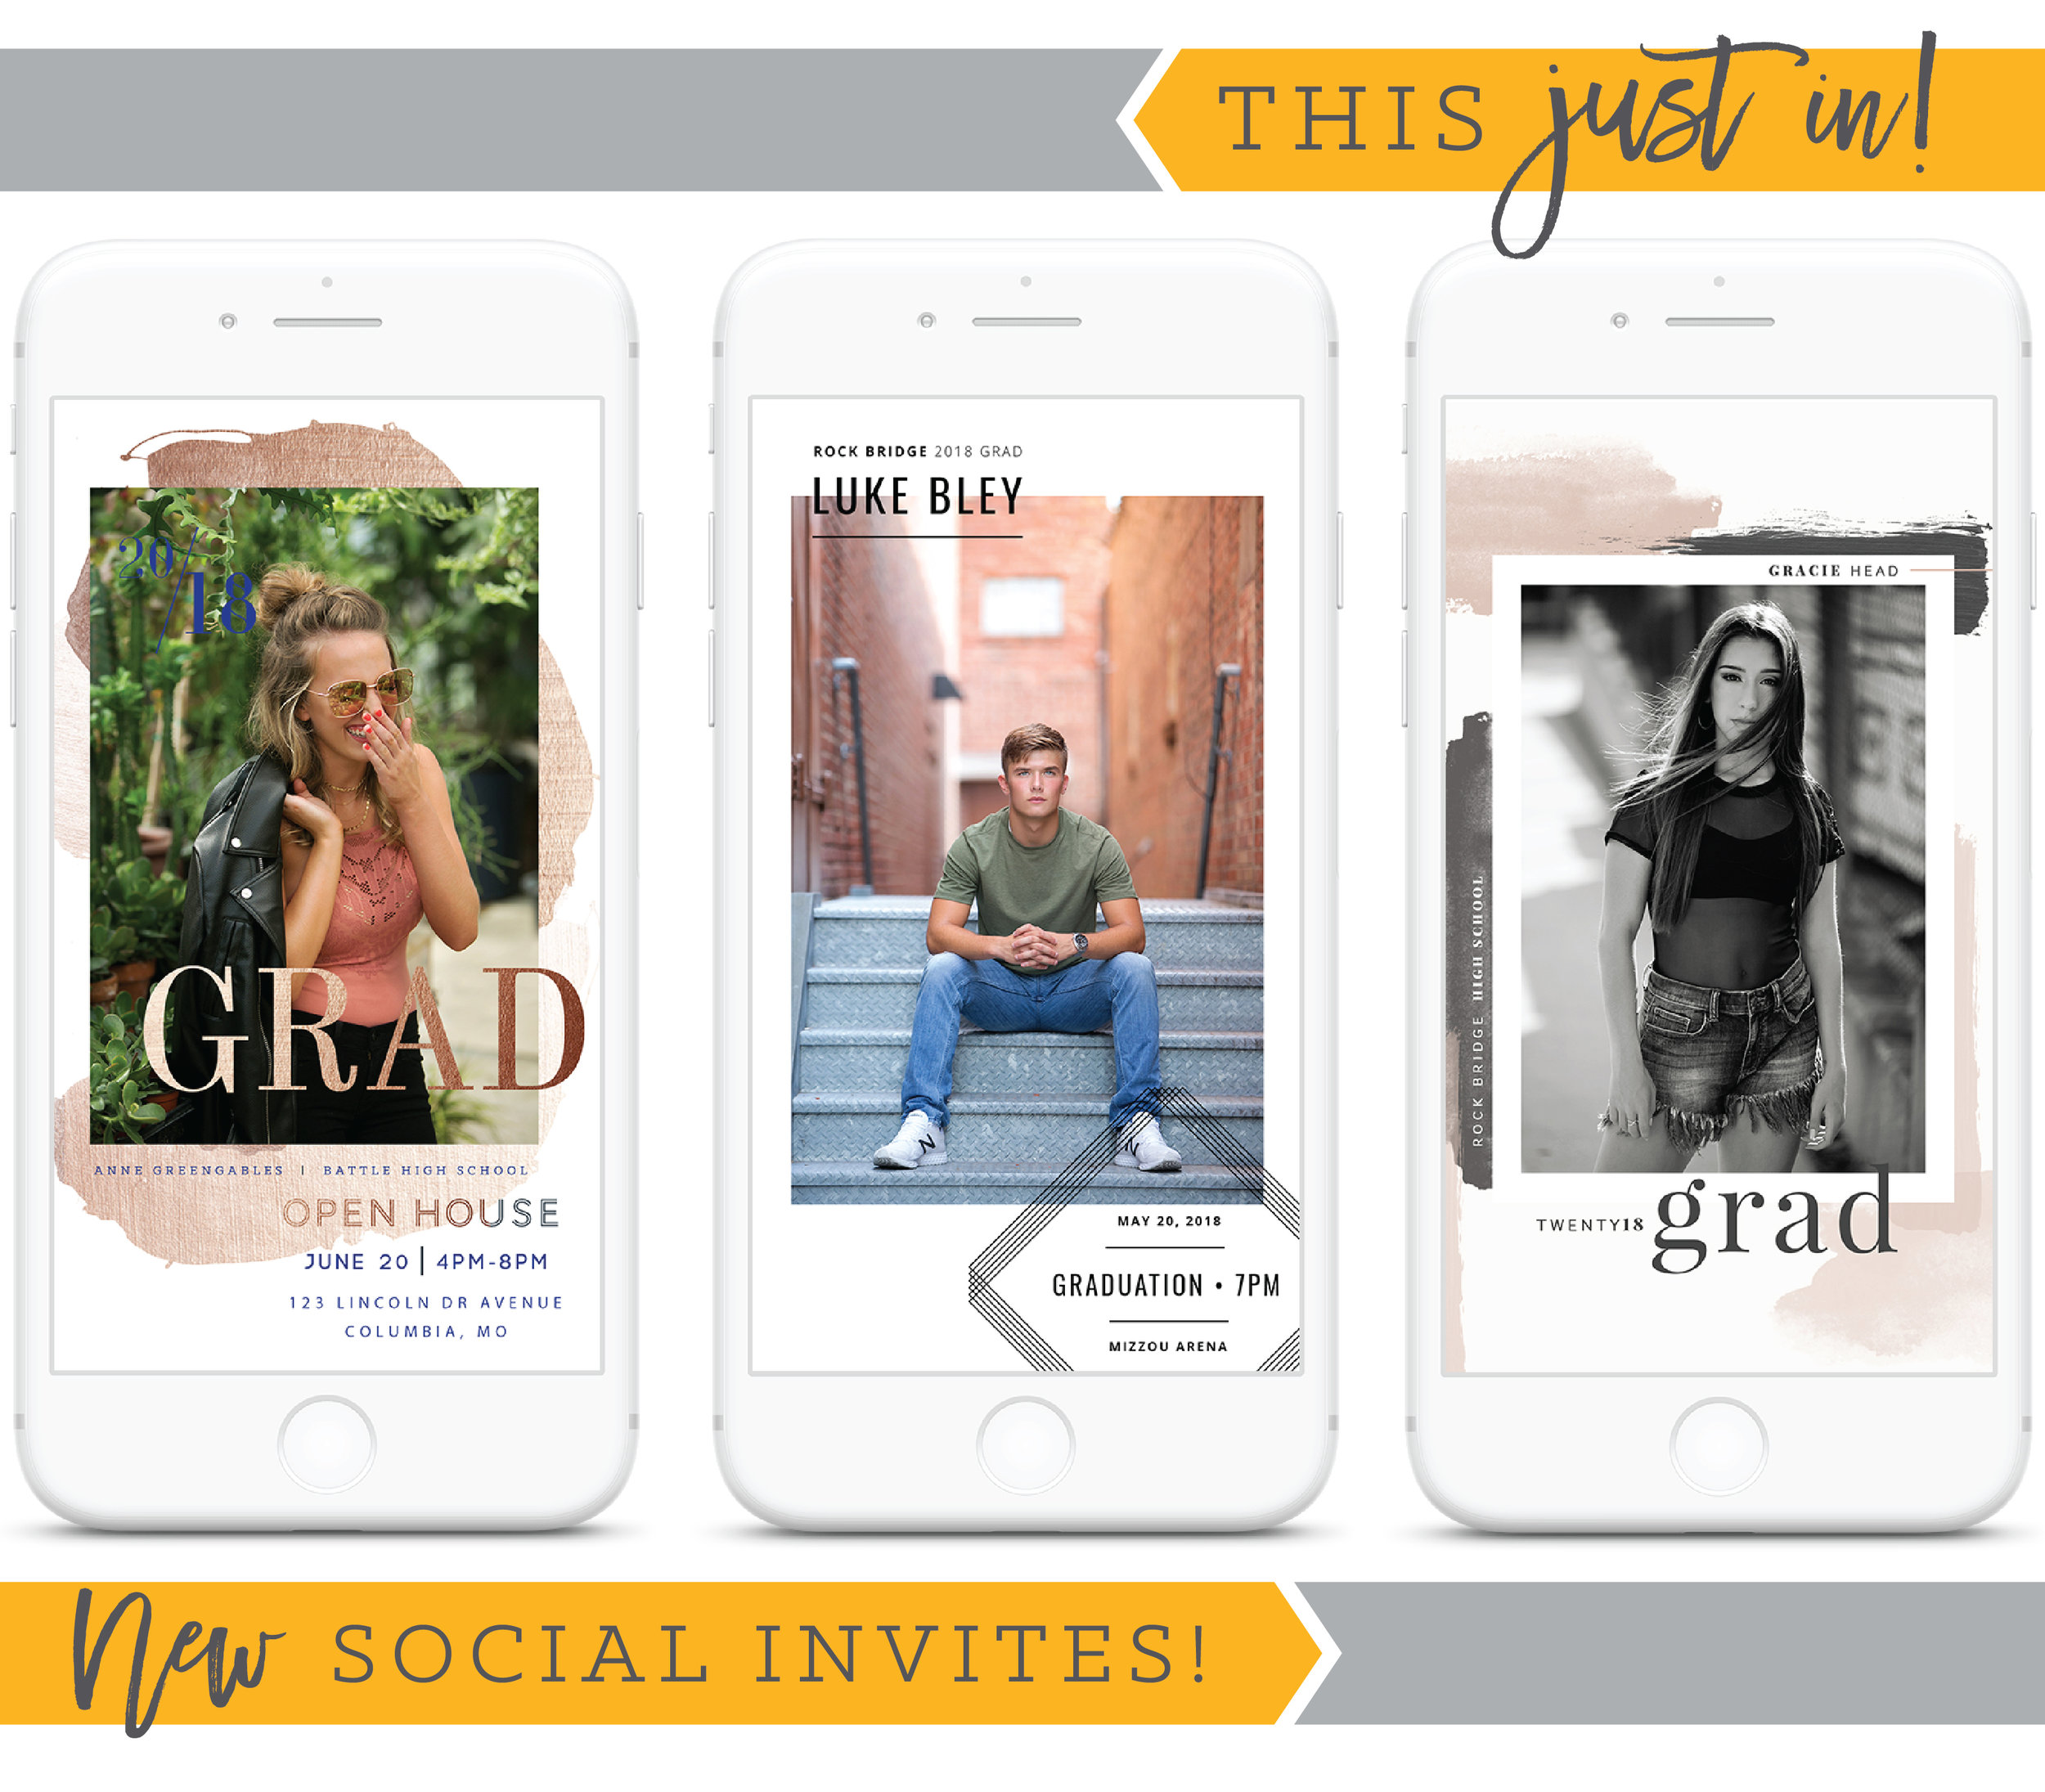 This just in! New social invites!